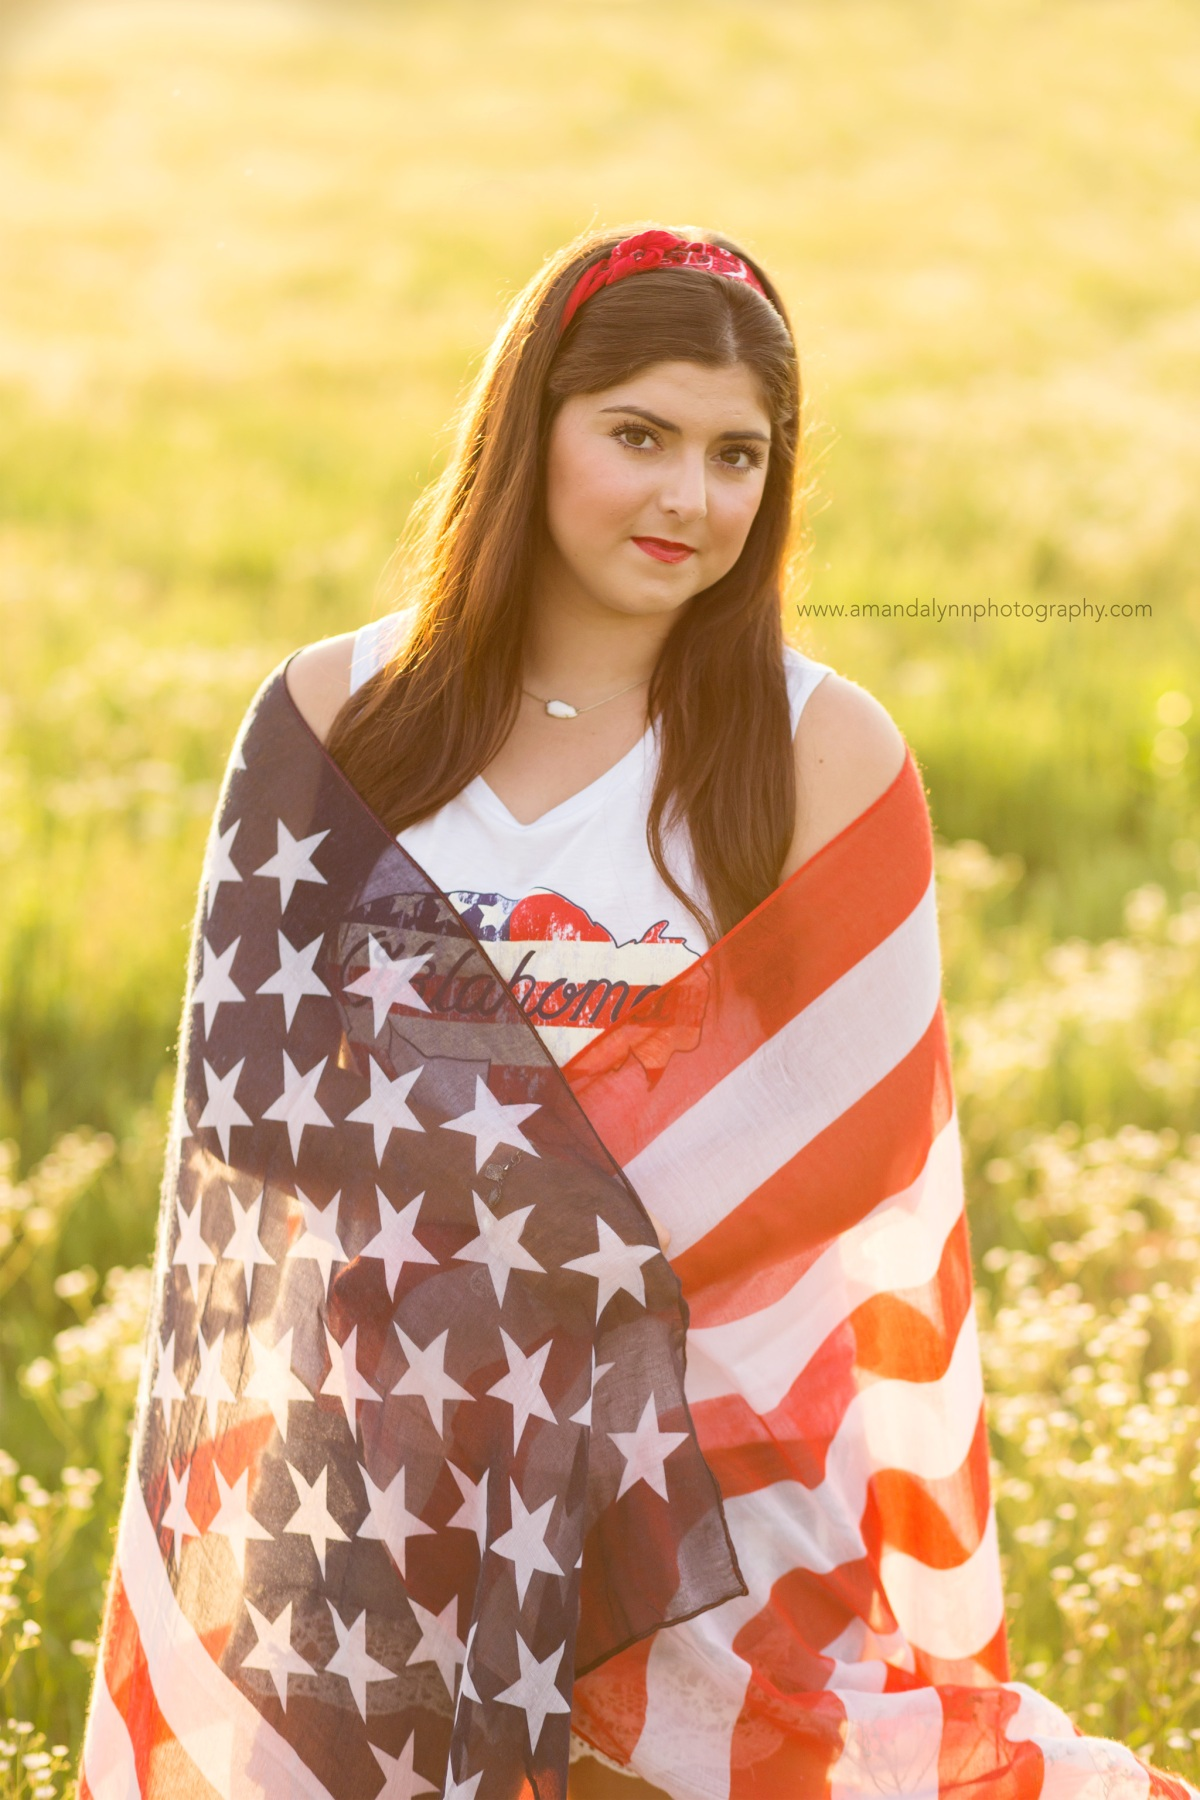 2017 Senior Rep for Amanda Lynn Photography Oklahoma City standing in a field of flowers with american flag